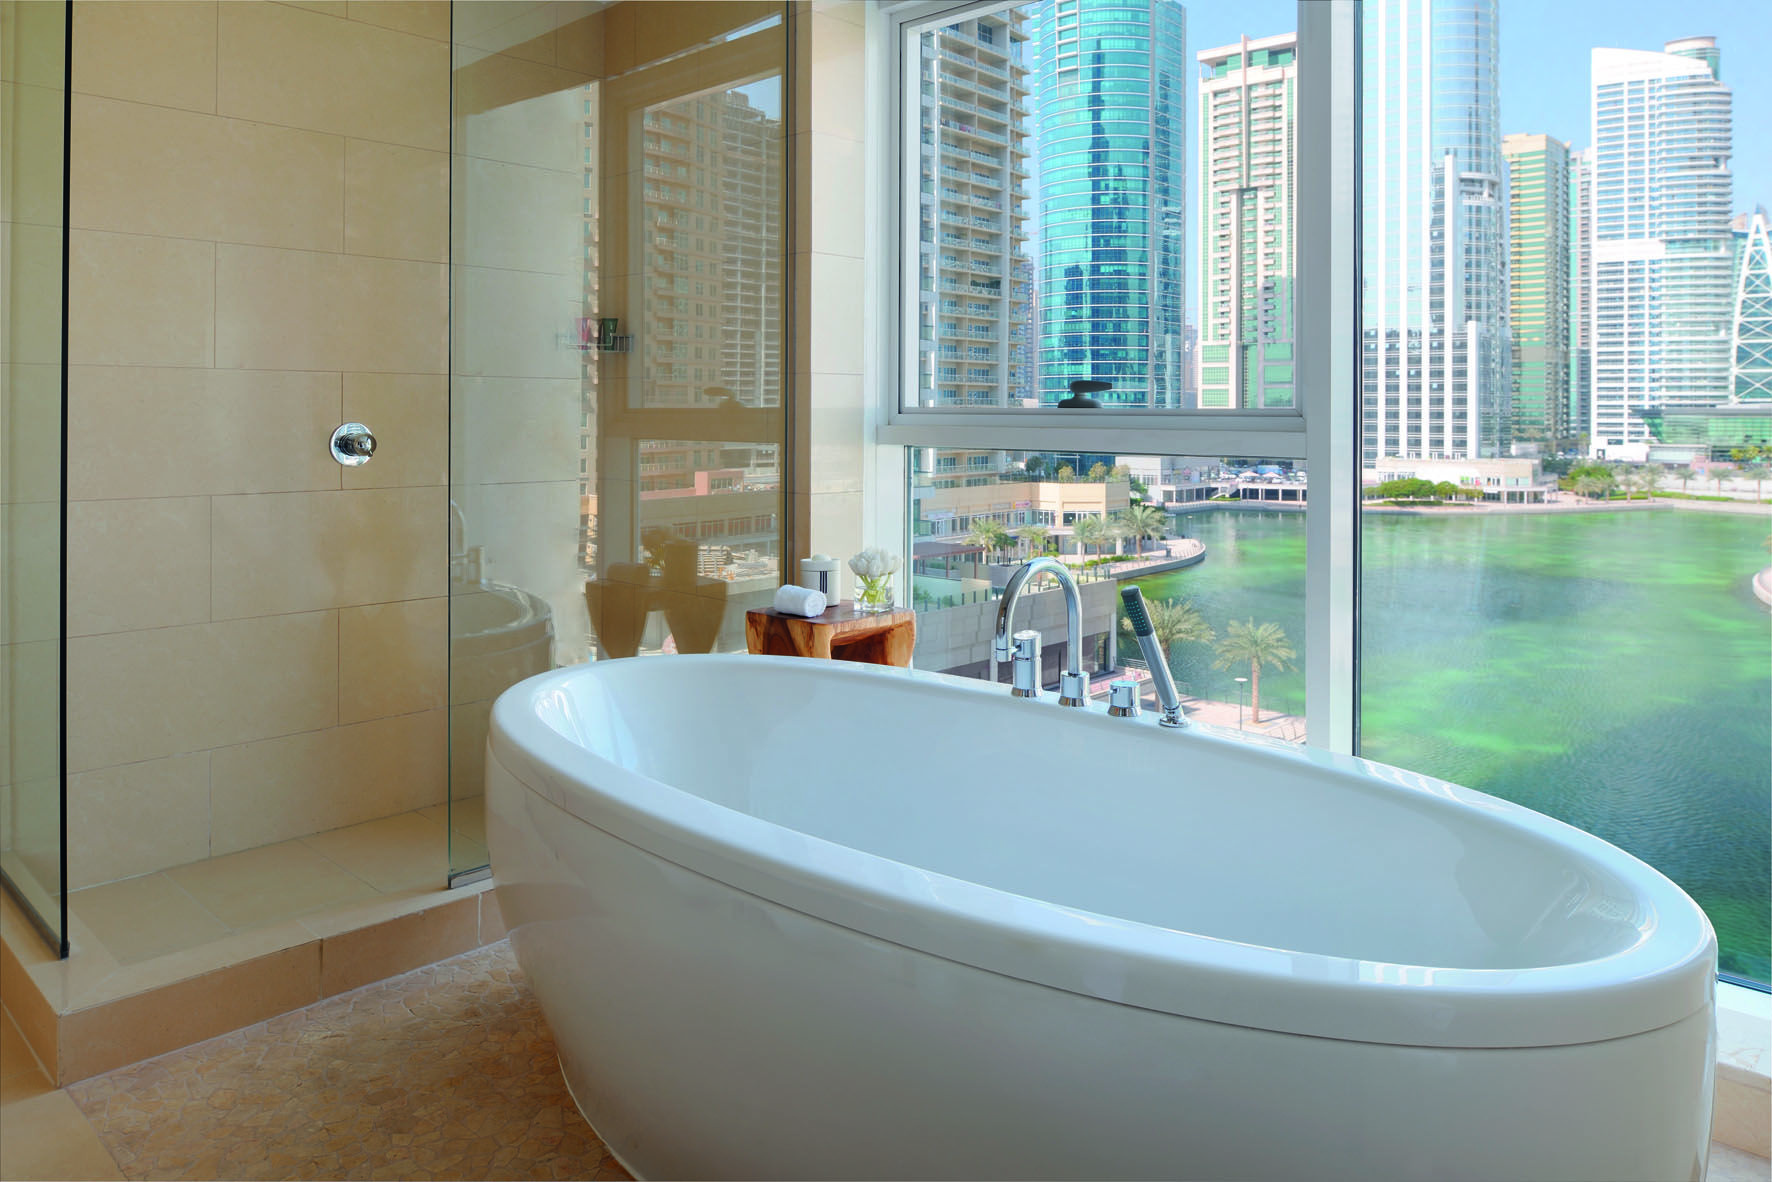 Bathroom with a view. | Mövenpick Hotel Jumeirah Lakes Towers ...